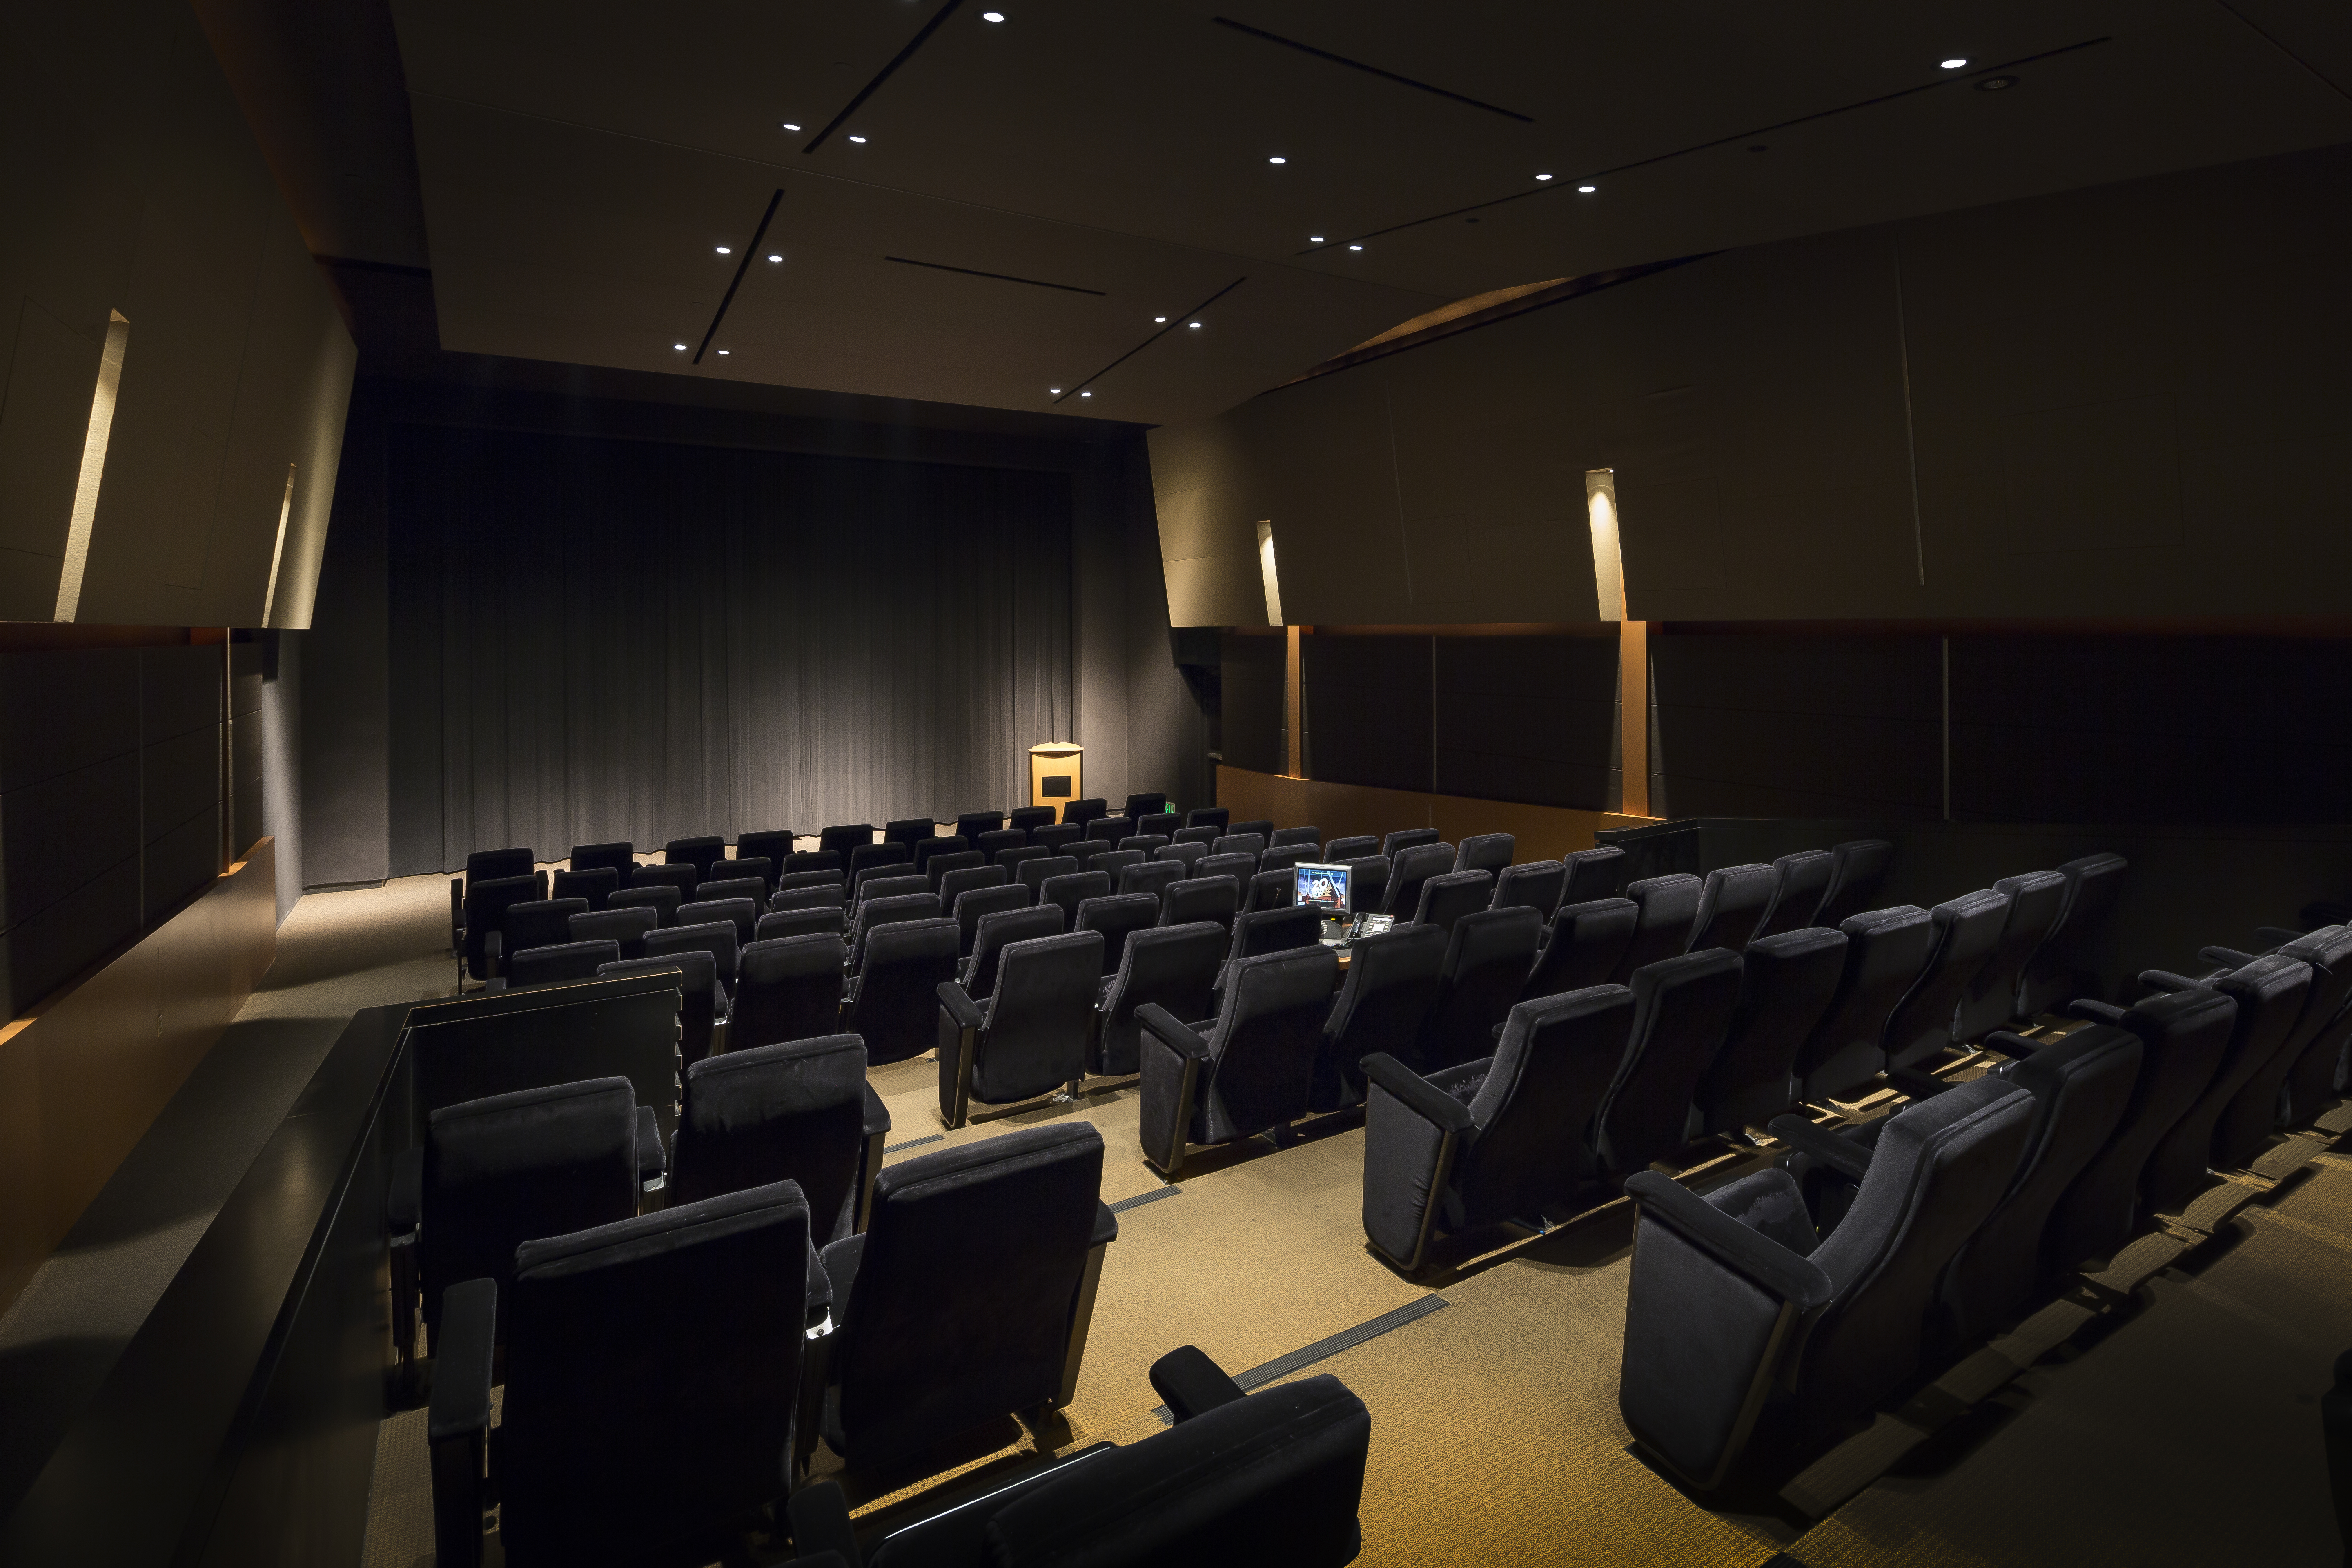 LITTLE THEATER - 120 Seats